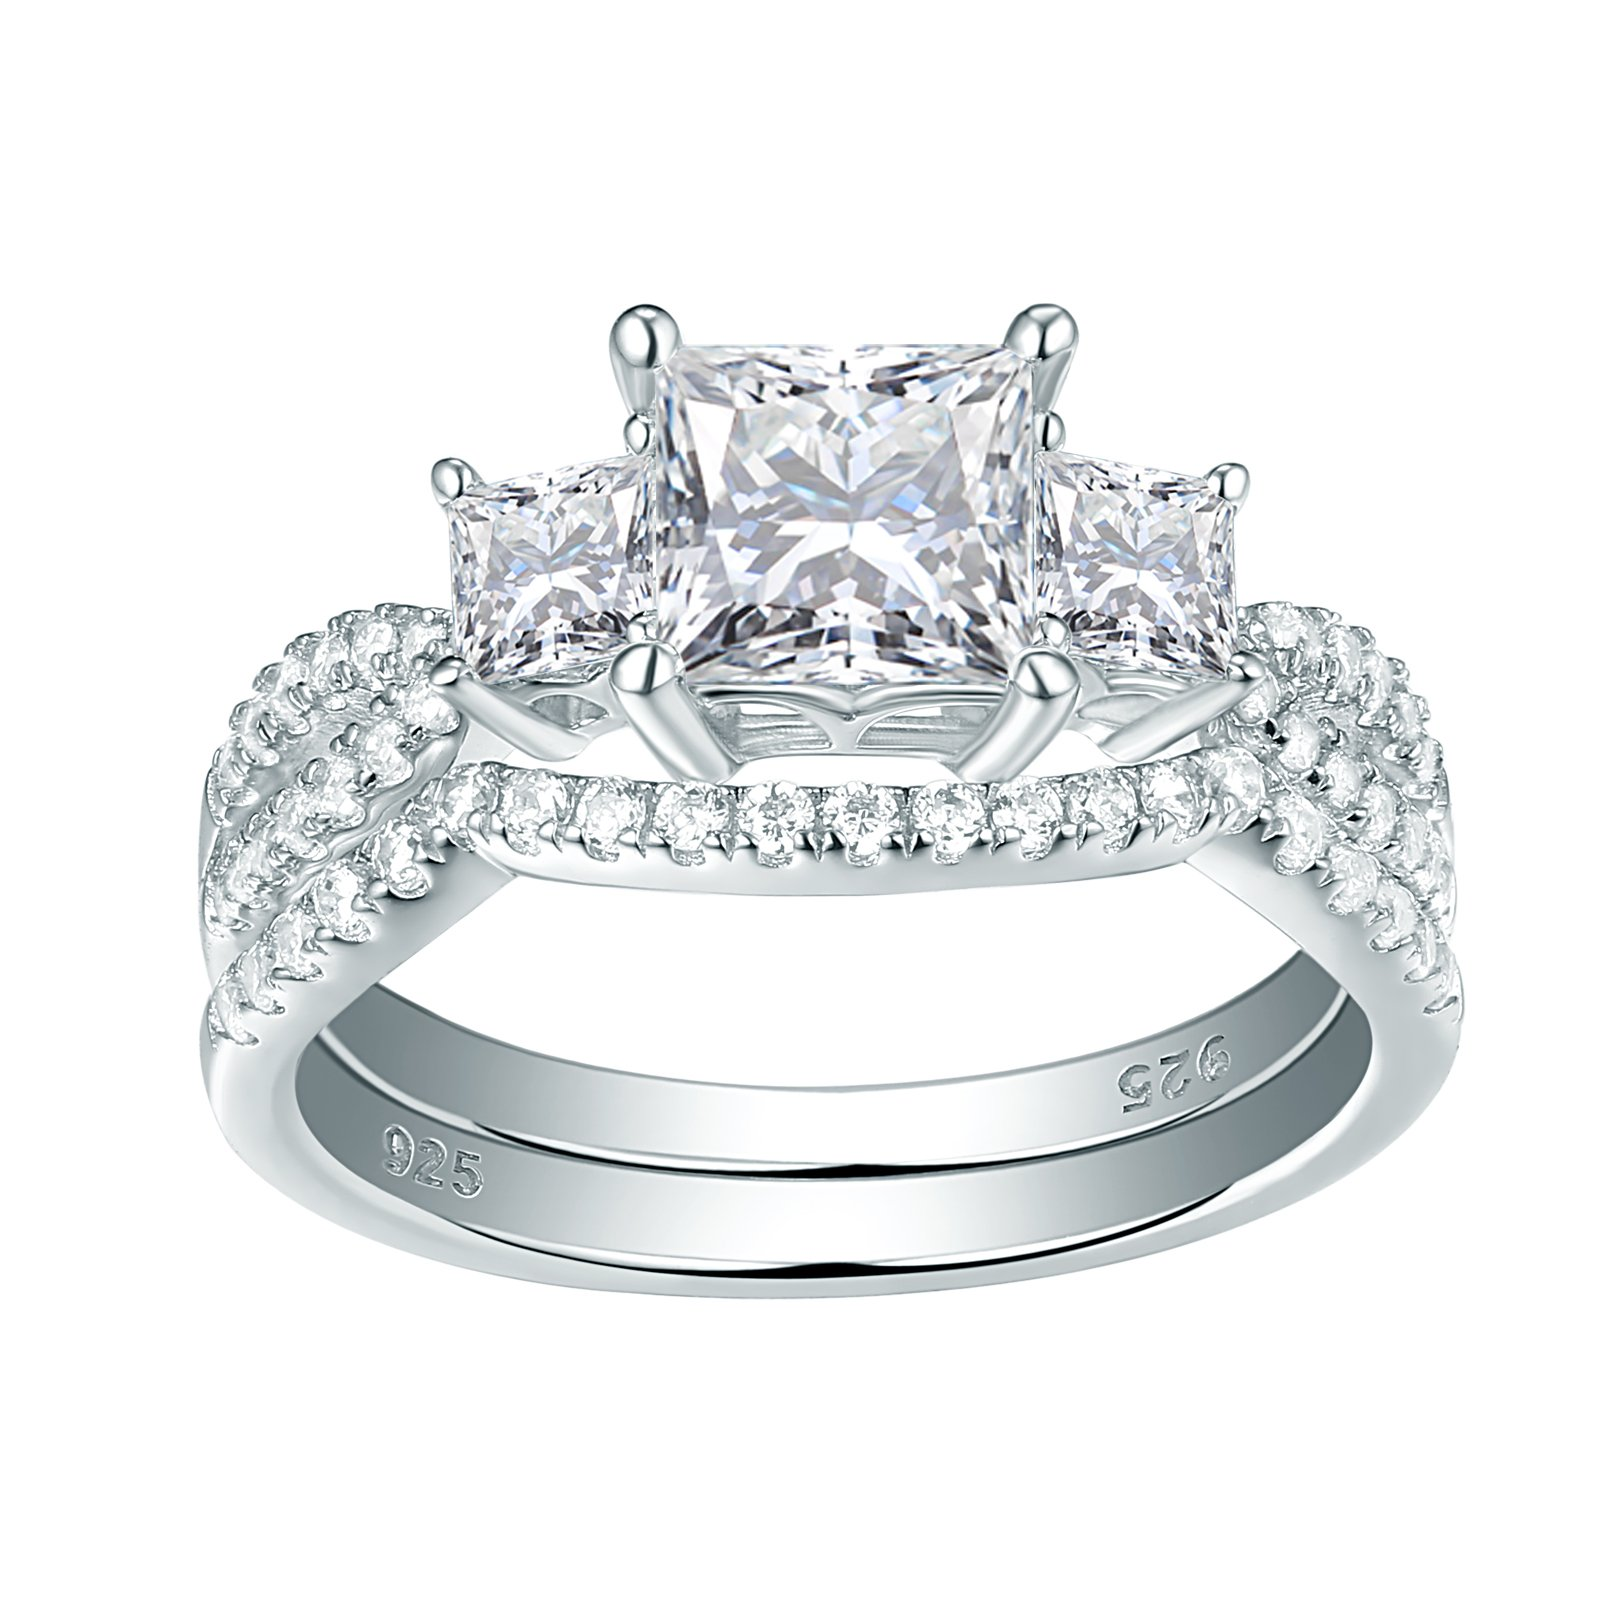 Newshe Jewellery Three Stone Cz Wedding Rings for Women Engagement Set Sterling Silver Princess Size 7